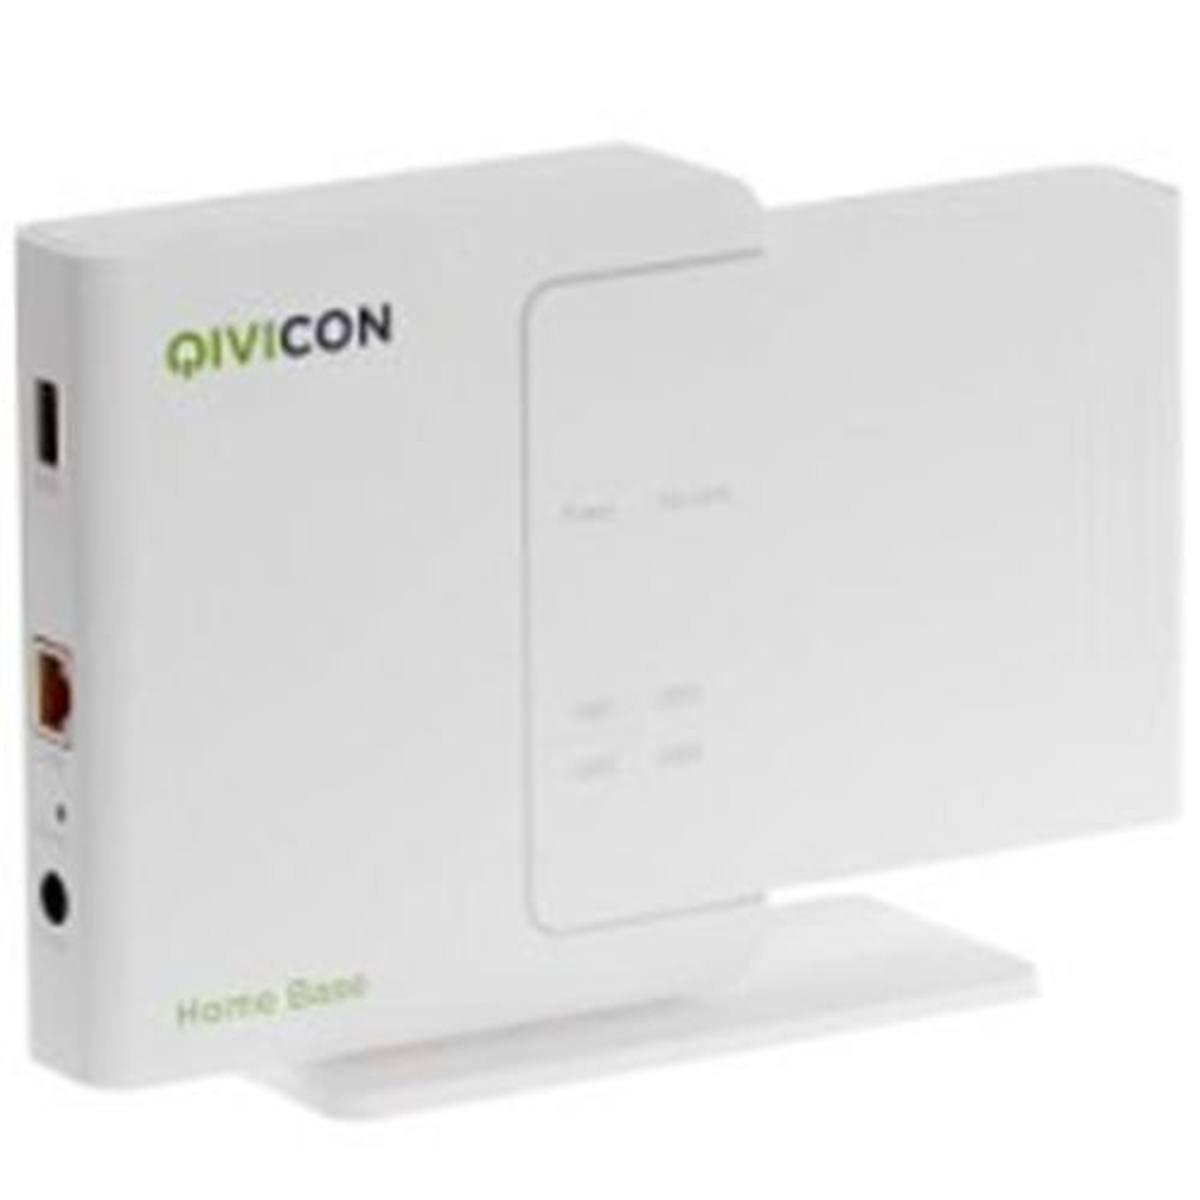 QIVICON Smart Home Base inkl. APP Lizenzcode